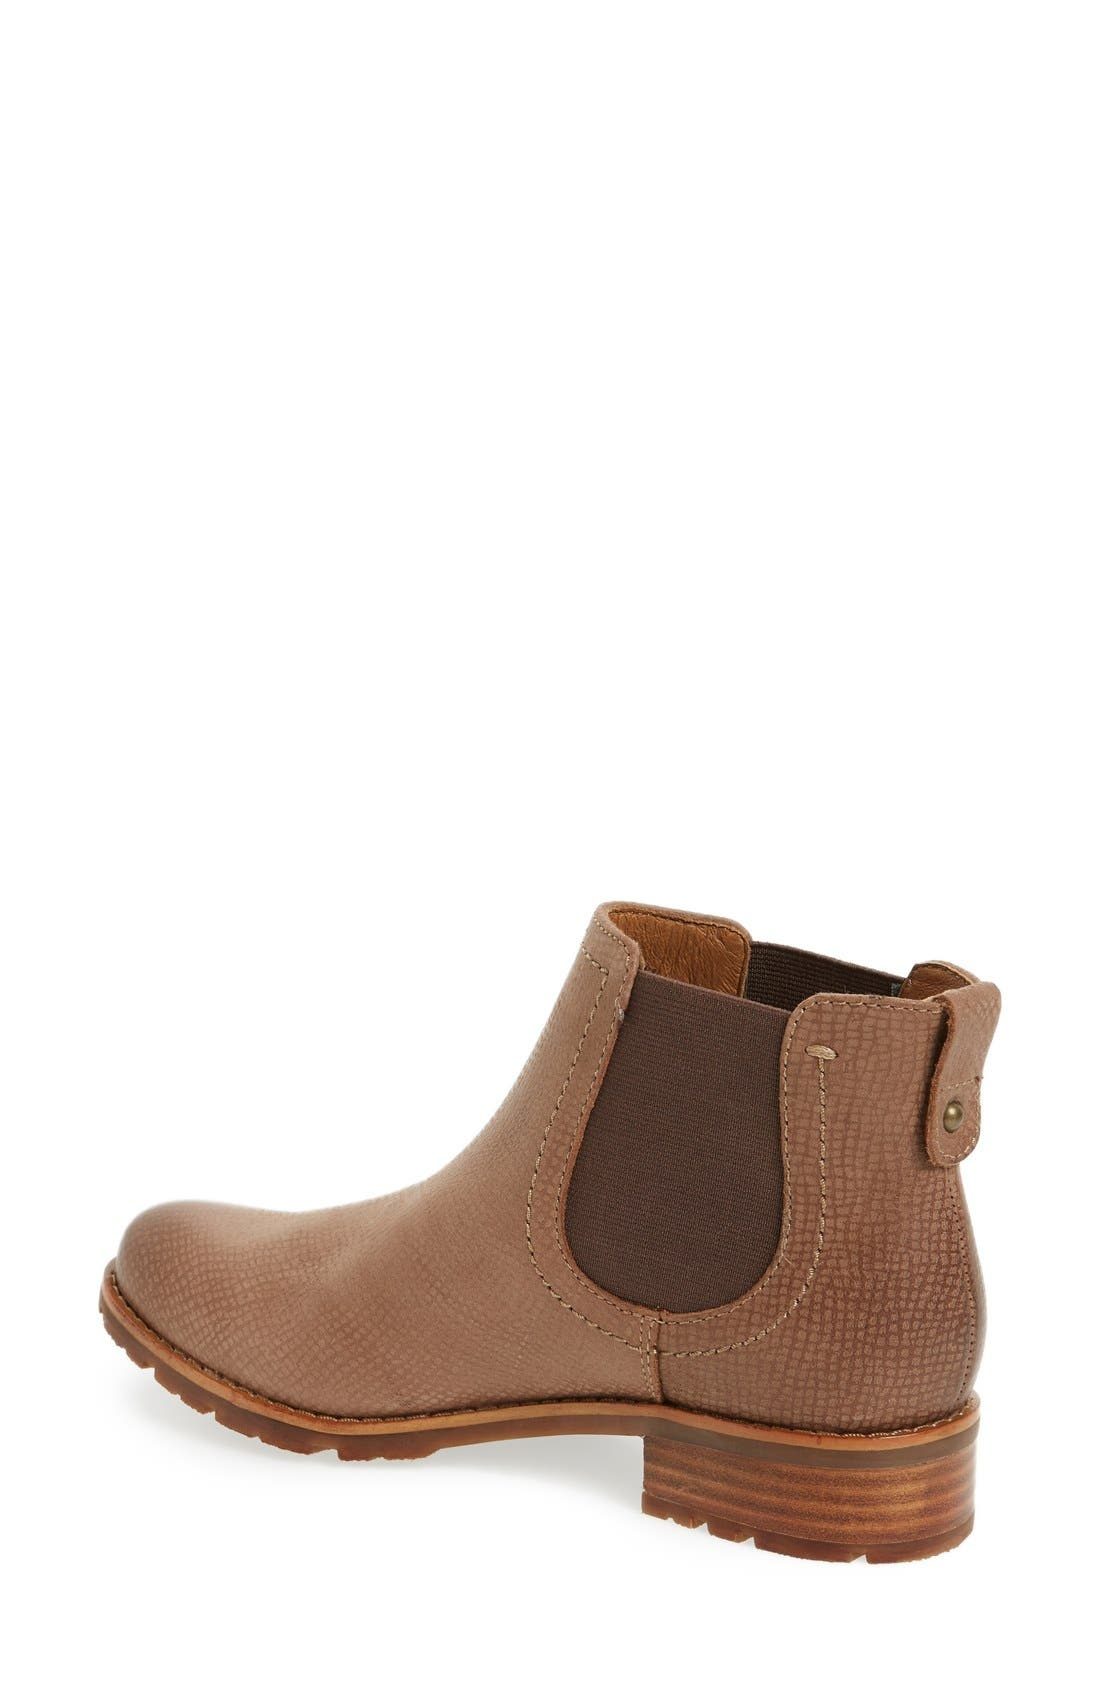 'Selby' Chelsea Bootie,                             Alternate thumbnail 12, color,